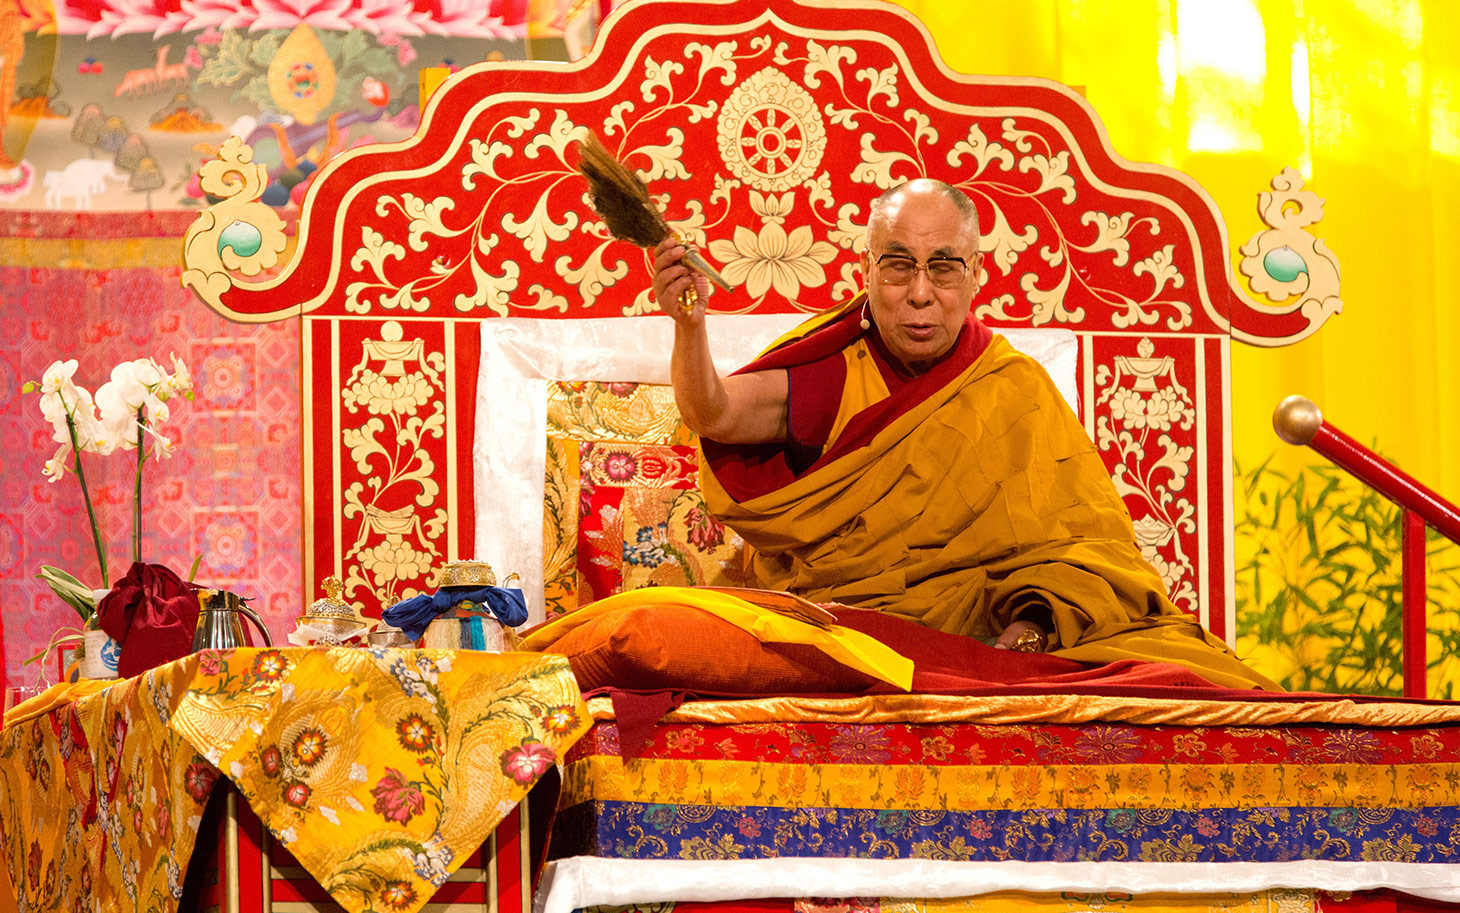 Tibetan spiritual leader Dalai Lama attends a ceremony in Hamburg, northern Germany, on August 26, 2014. With the Buddhist initiation, the Dalai Lama ended the spiritual part of his visit to the Hanseatic city. (Photo courtesy: AFP/CHRISTIAN CHARISIUS)